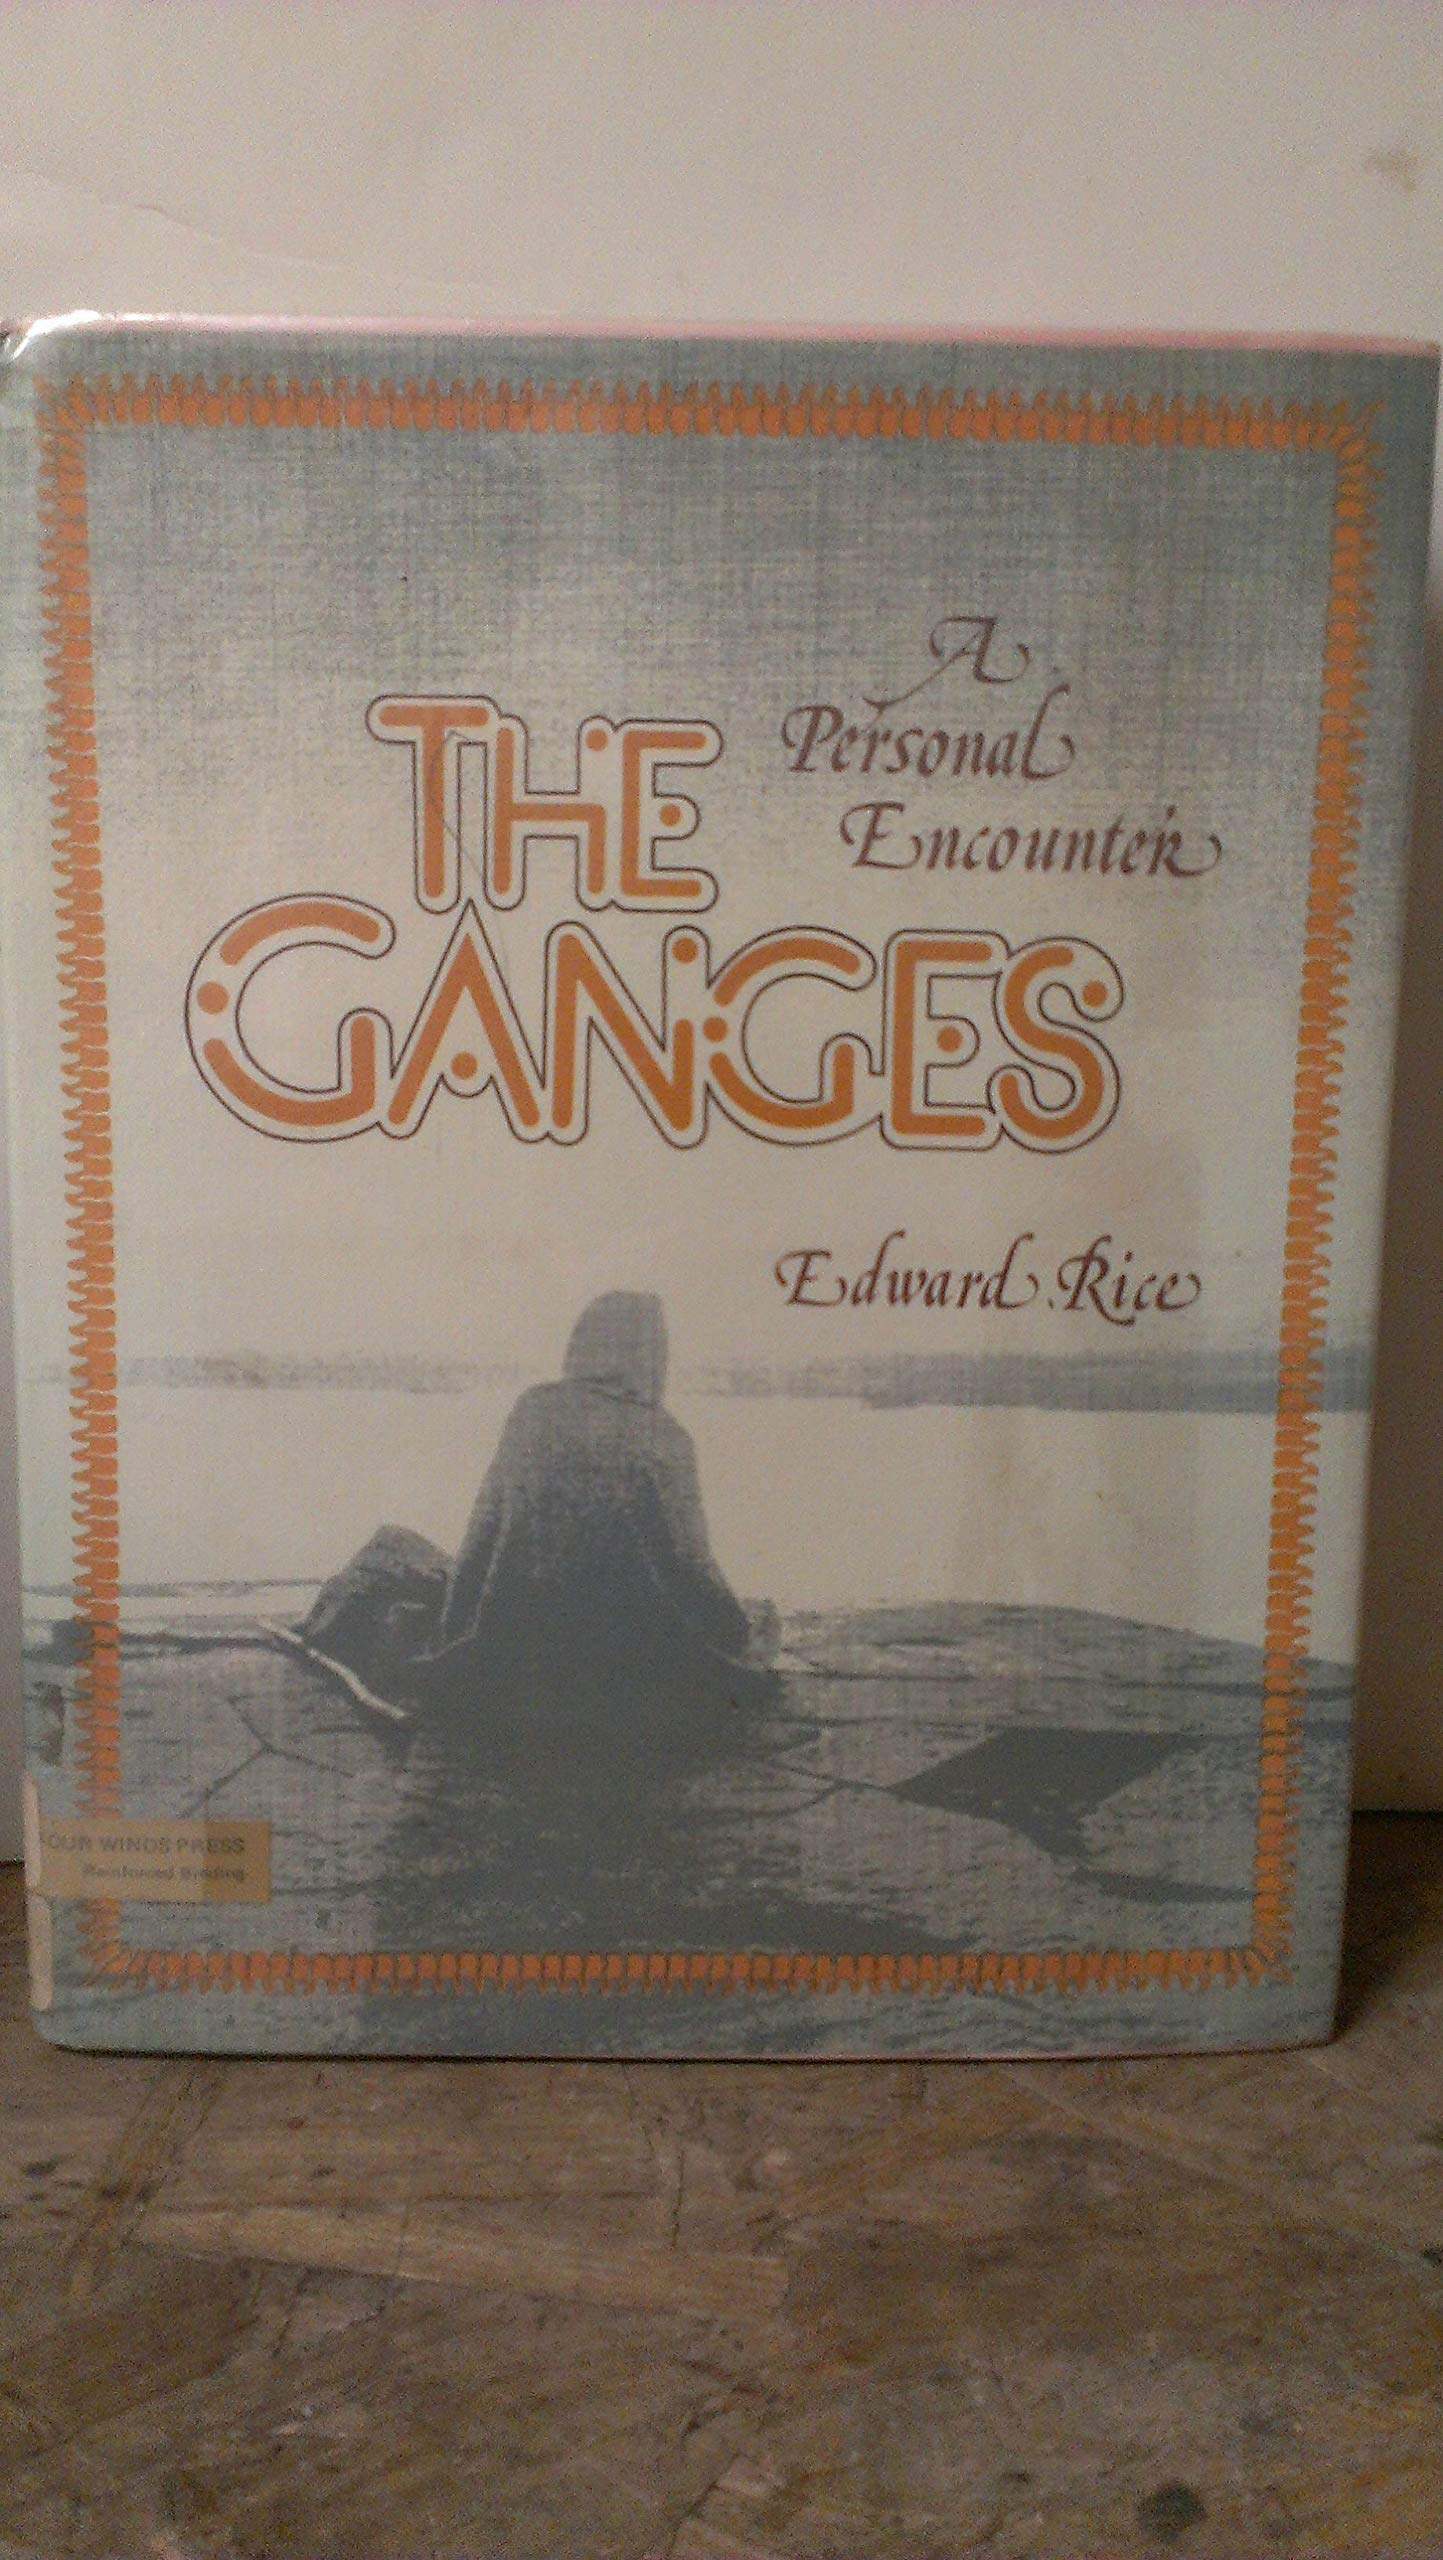 A Personal Encounter The Ganges